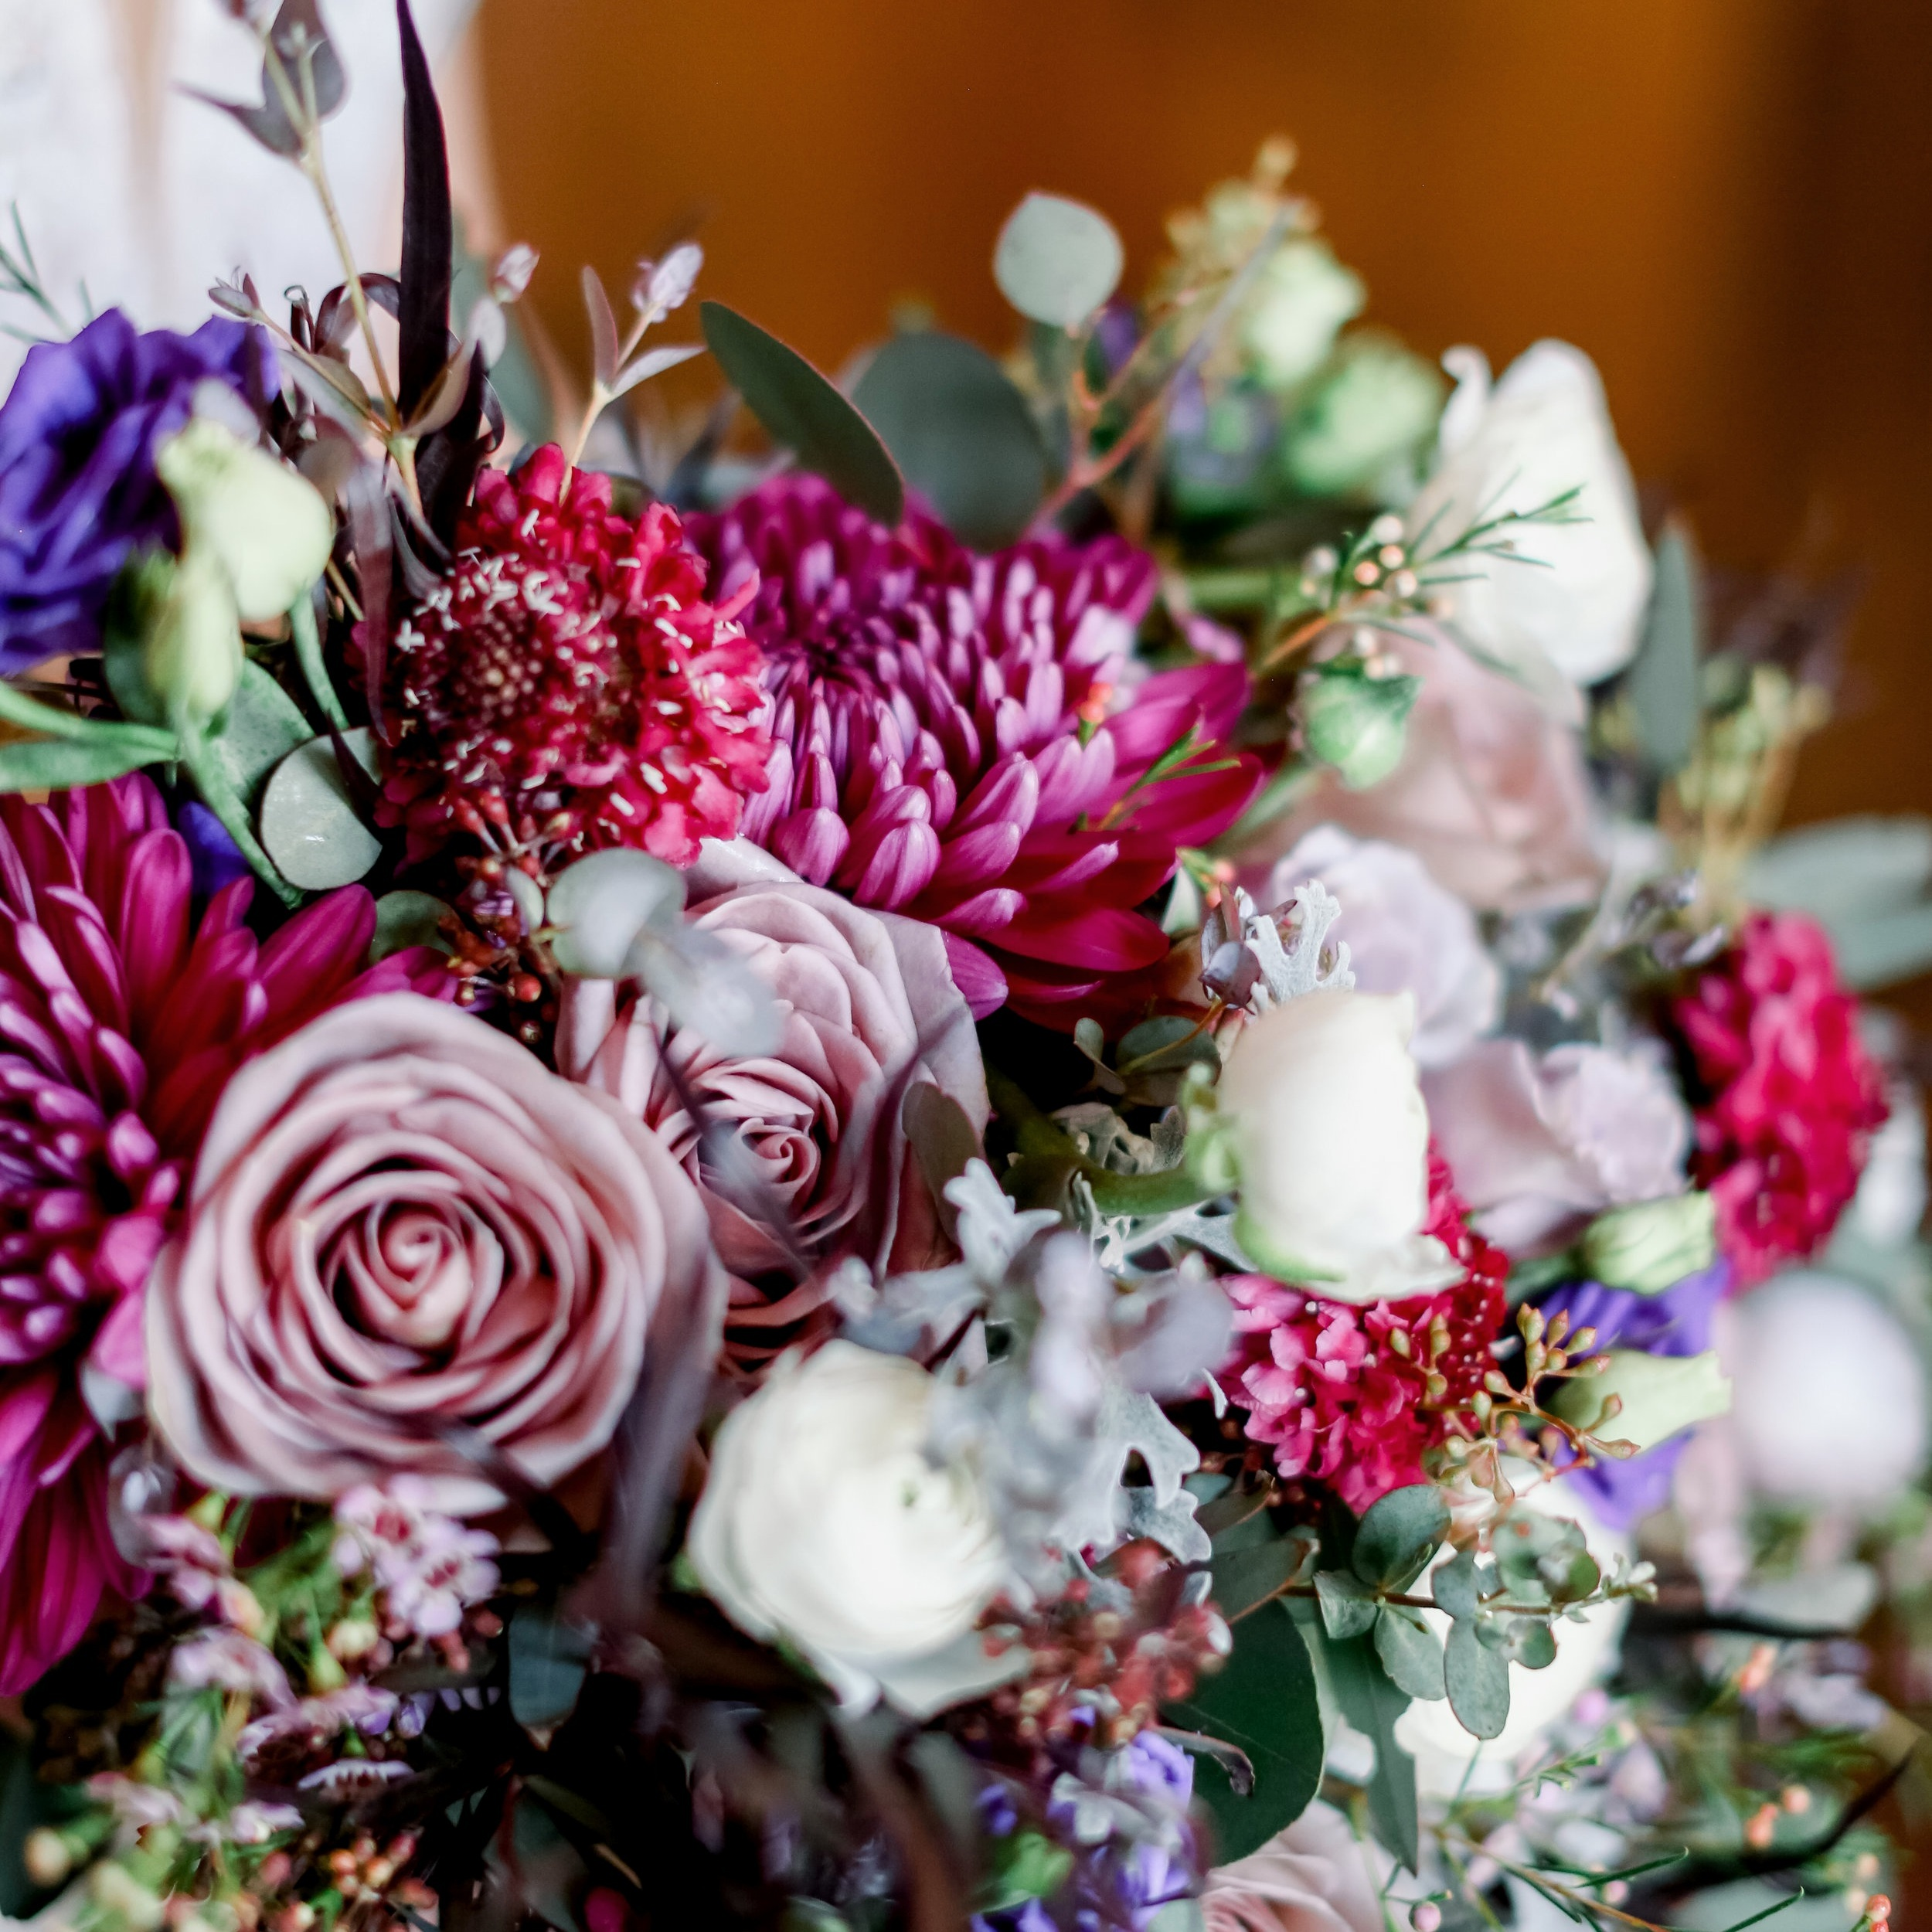 A SIMPLE WAY TO ORDER WEDDING FLOWERS -